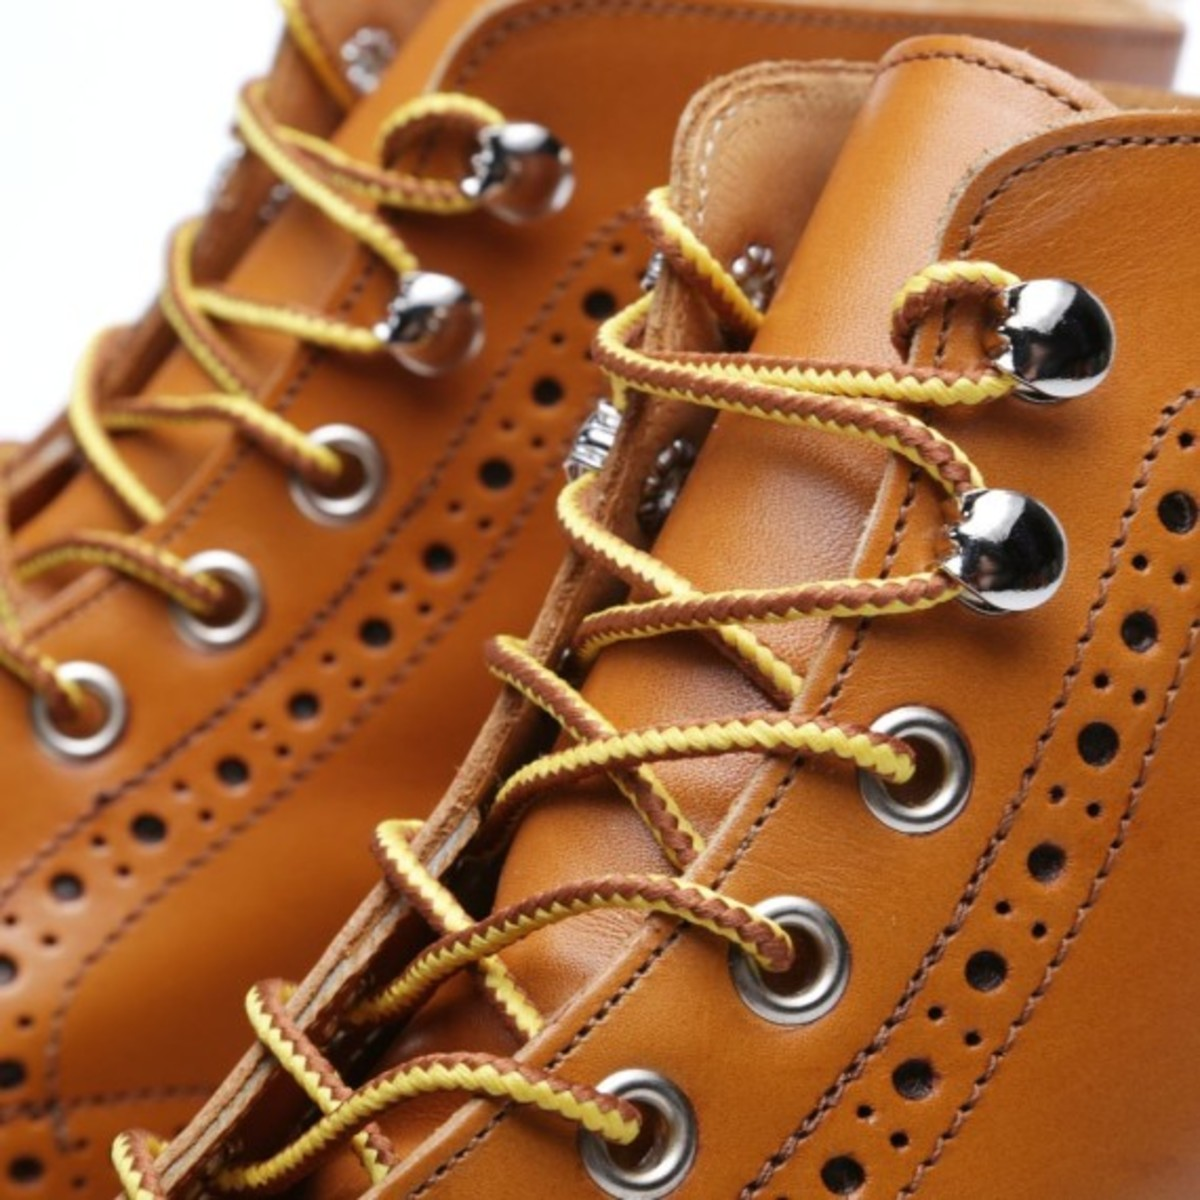 end-trickers-stow-brogue-boot-spring-2014-12